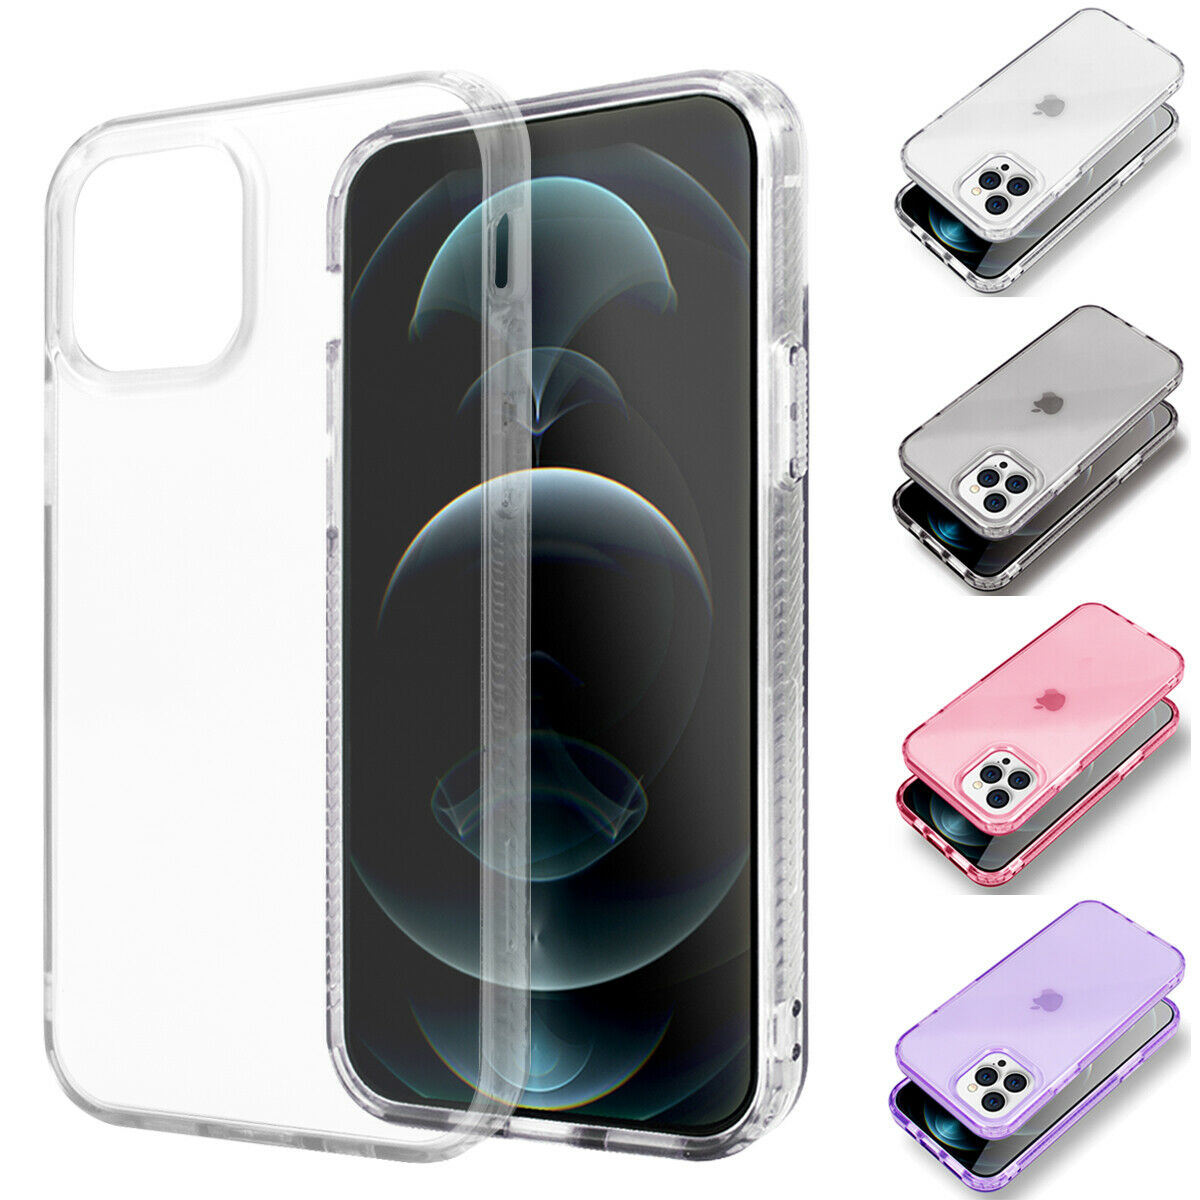 iPhone 12 Pro Max Clear Slim Back Shockproof Armor Soft Case Cover